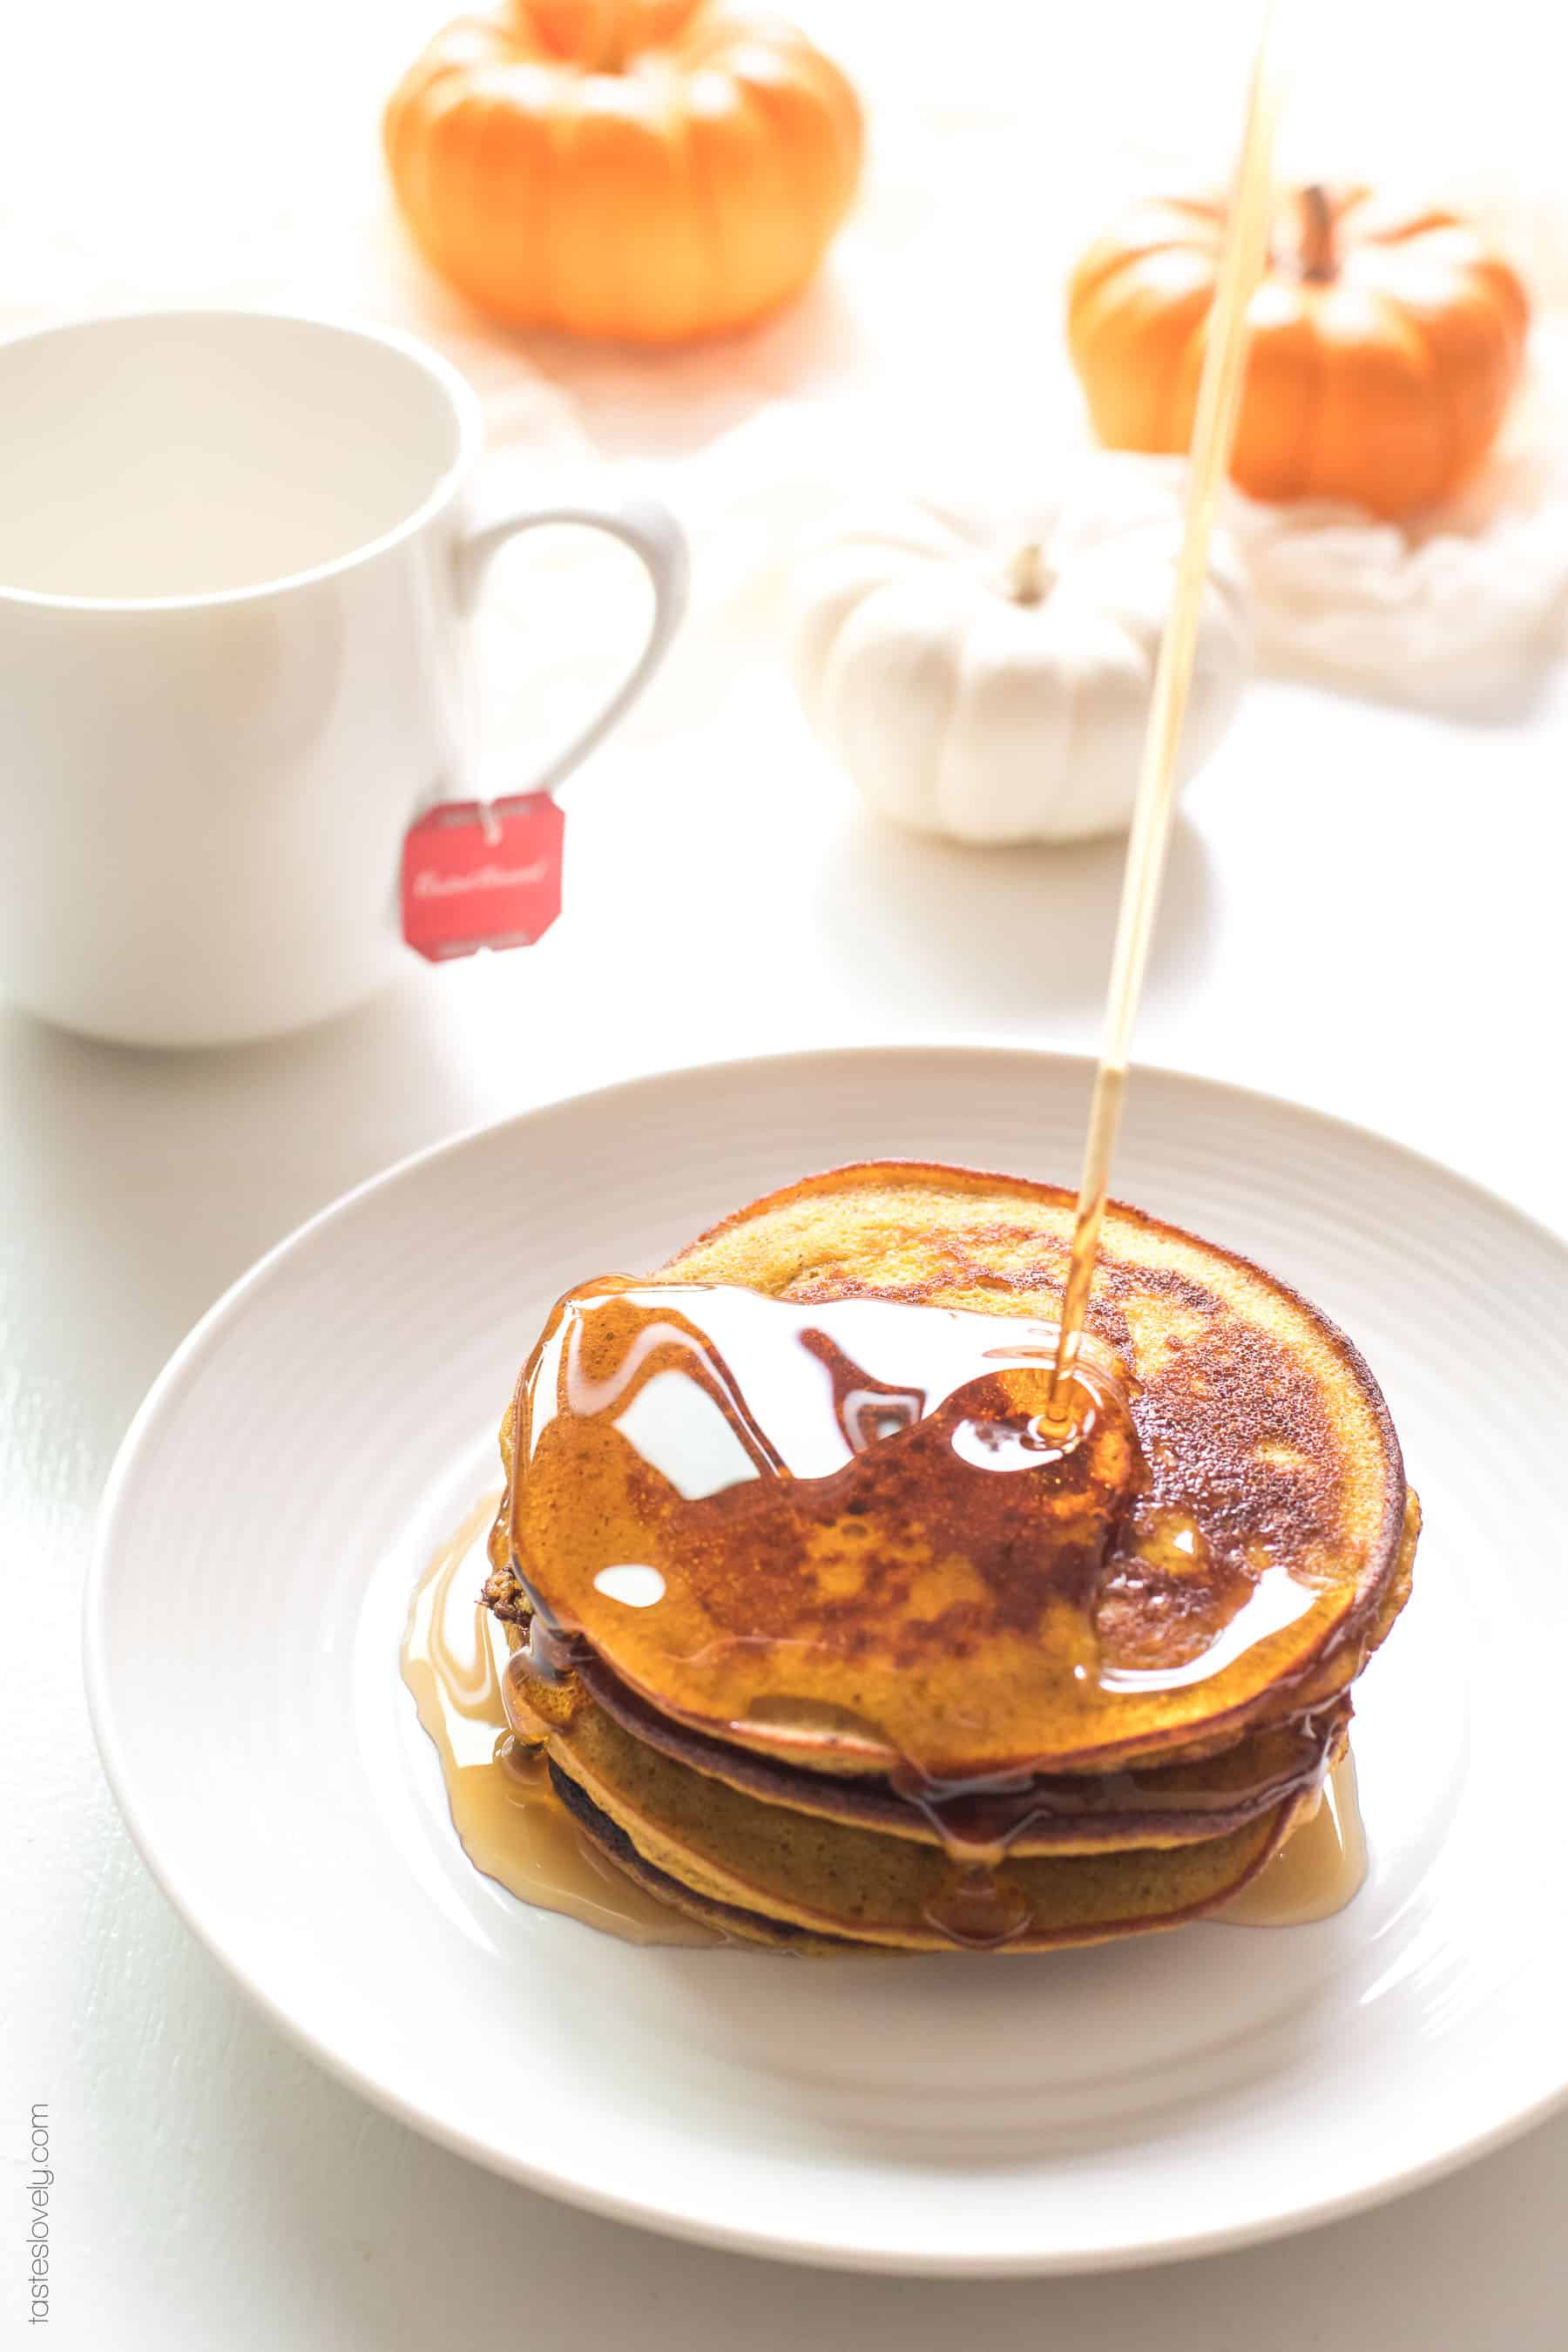 Paleo Pumpkin Pancakes made with almond flour and coconut flour. Light and fluffy pancakes packed with pumpkin flavor! Paleo, gluten free, grain free, dairy free, refined sugar free, clean eating.